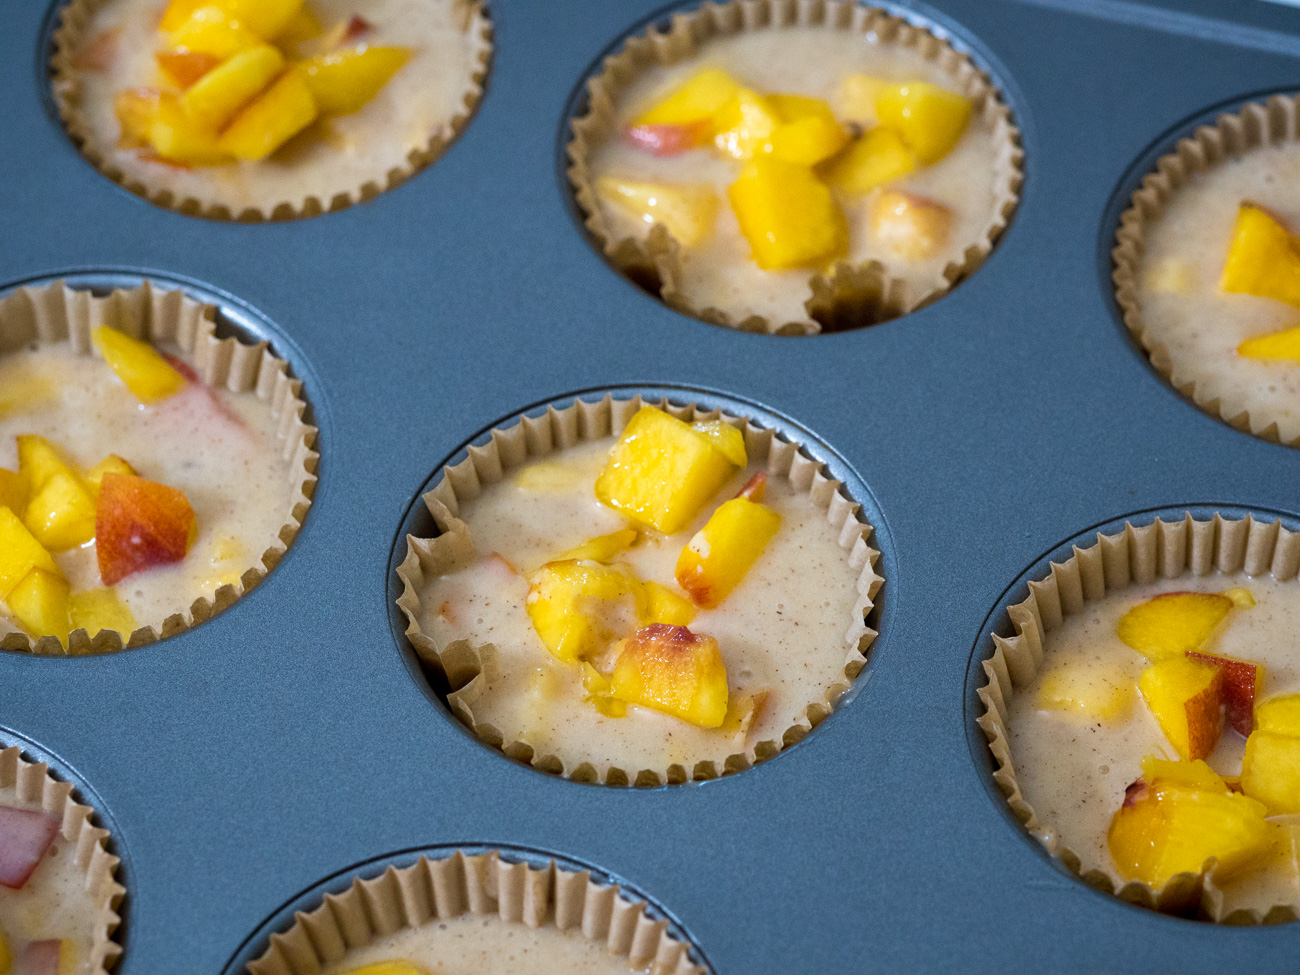 Portion the batter into the muffin cups before moving on to the topping.